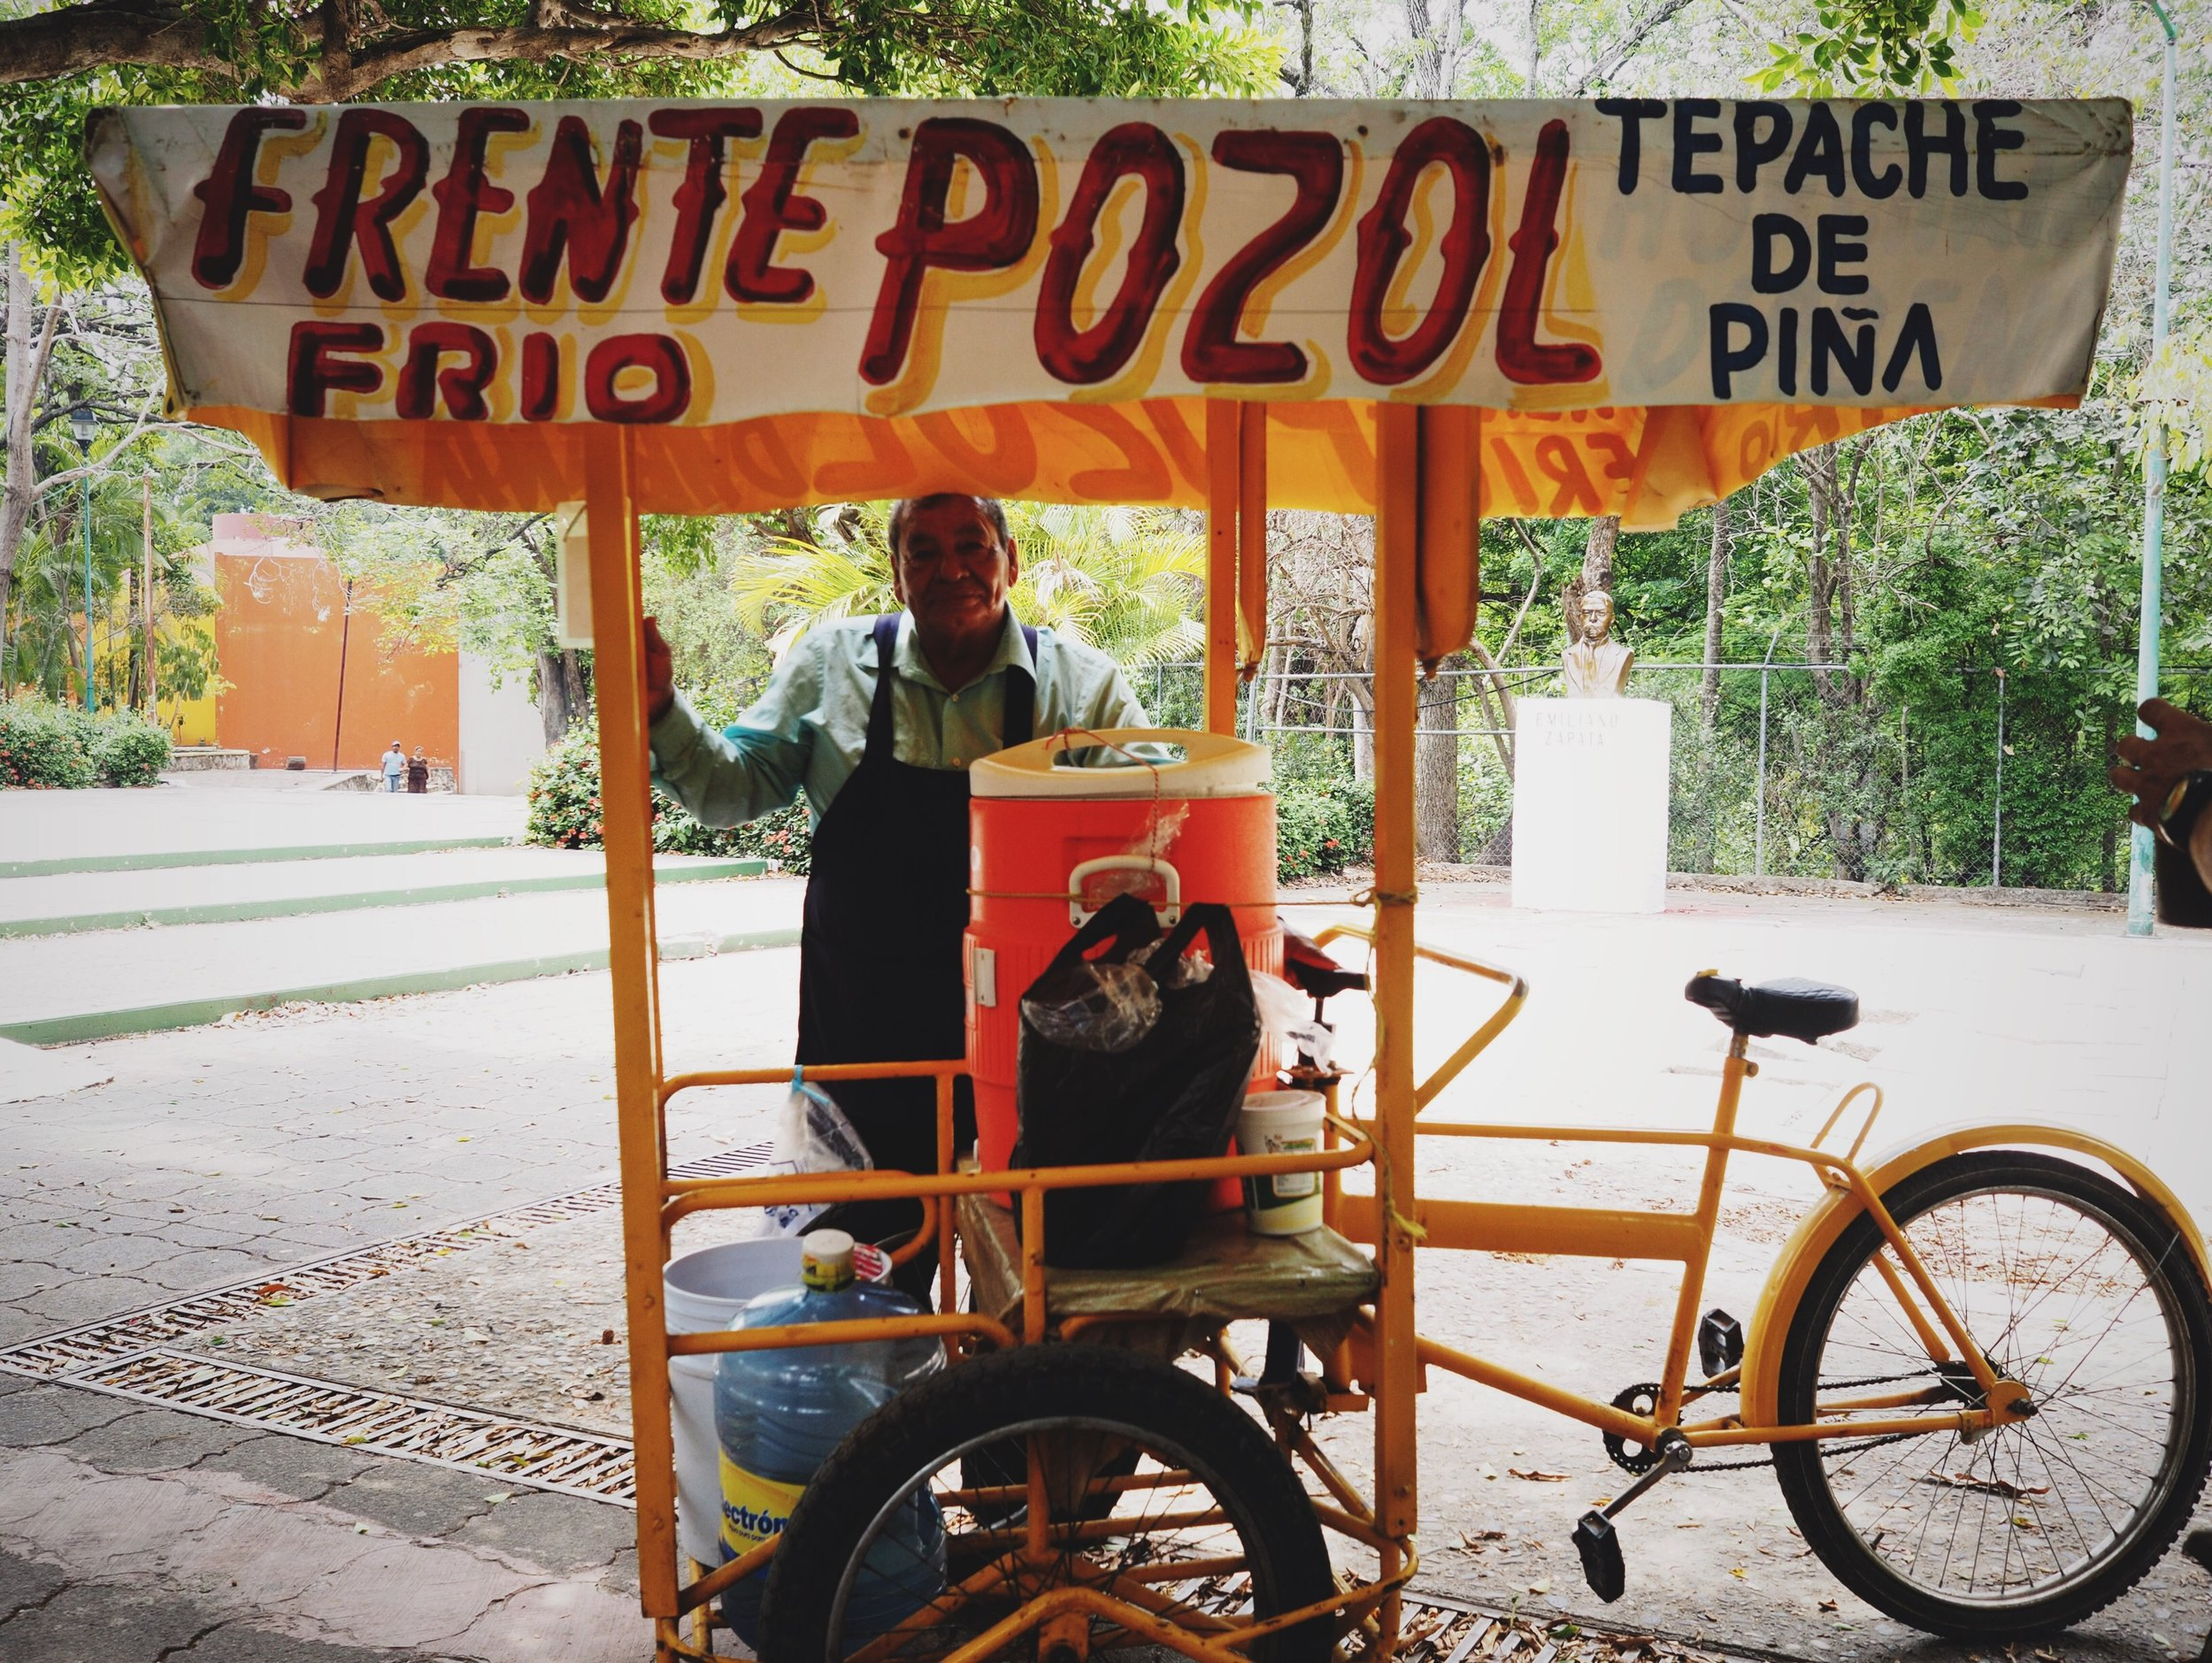 Vendor selling Pozol in Tuxtla - a corn and chocolate drink commonly found in Chiapas